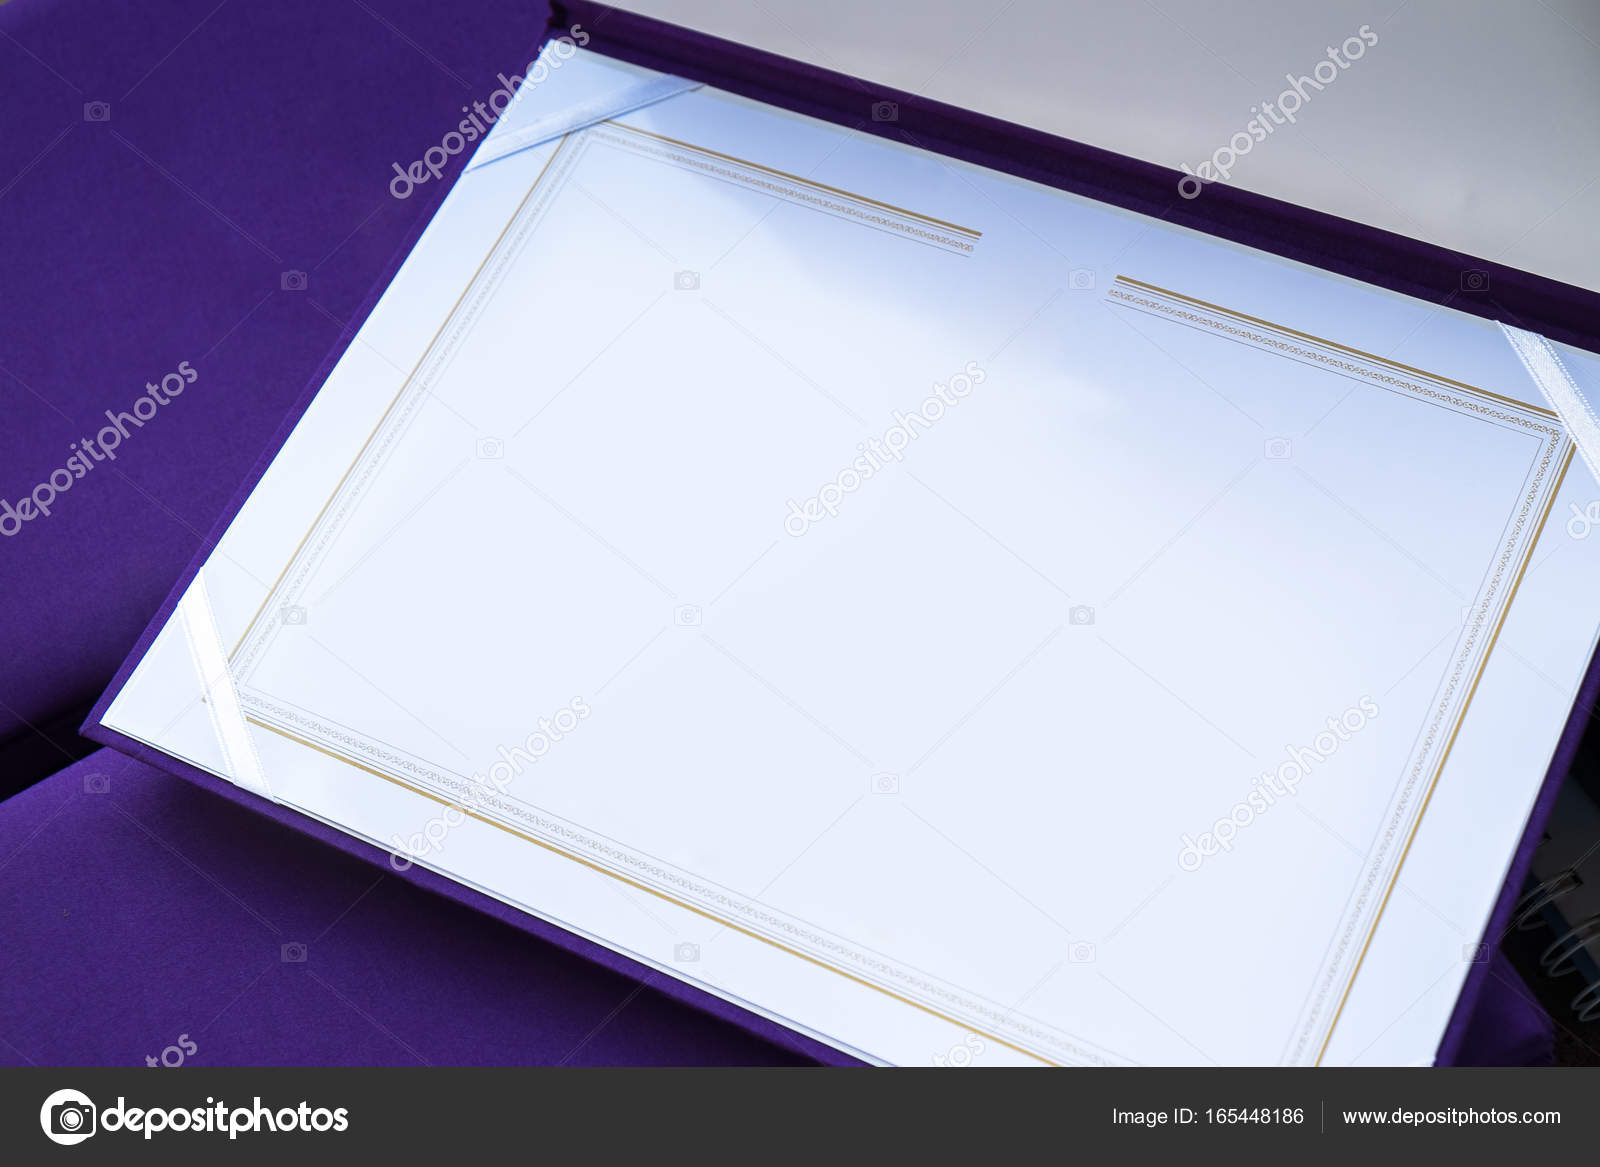 Blank Certificate Template With High Quality Purple Silk Cover